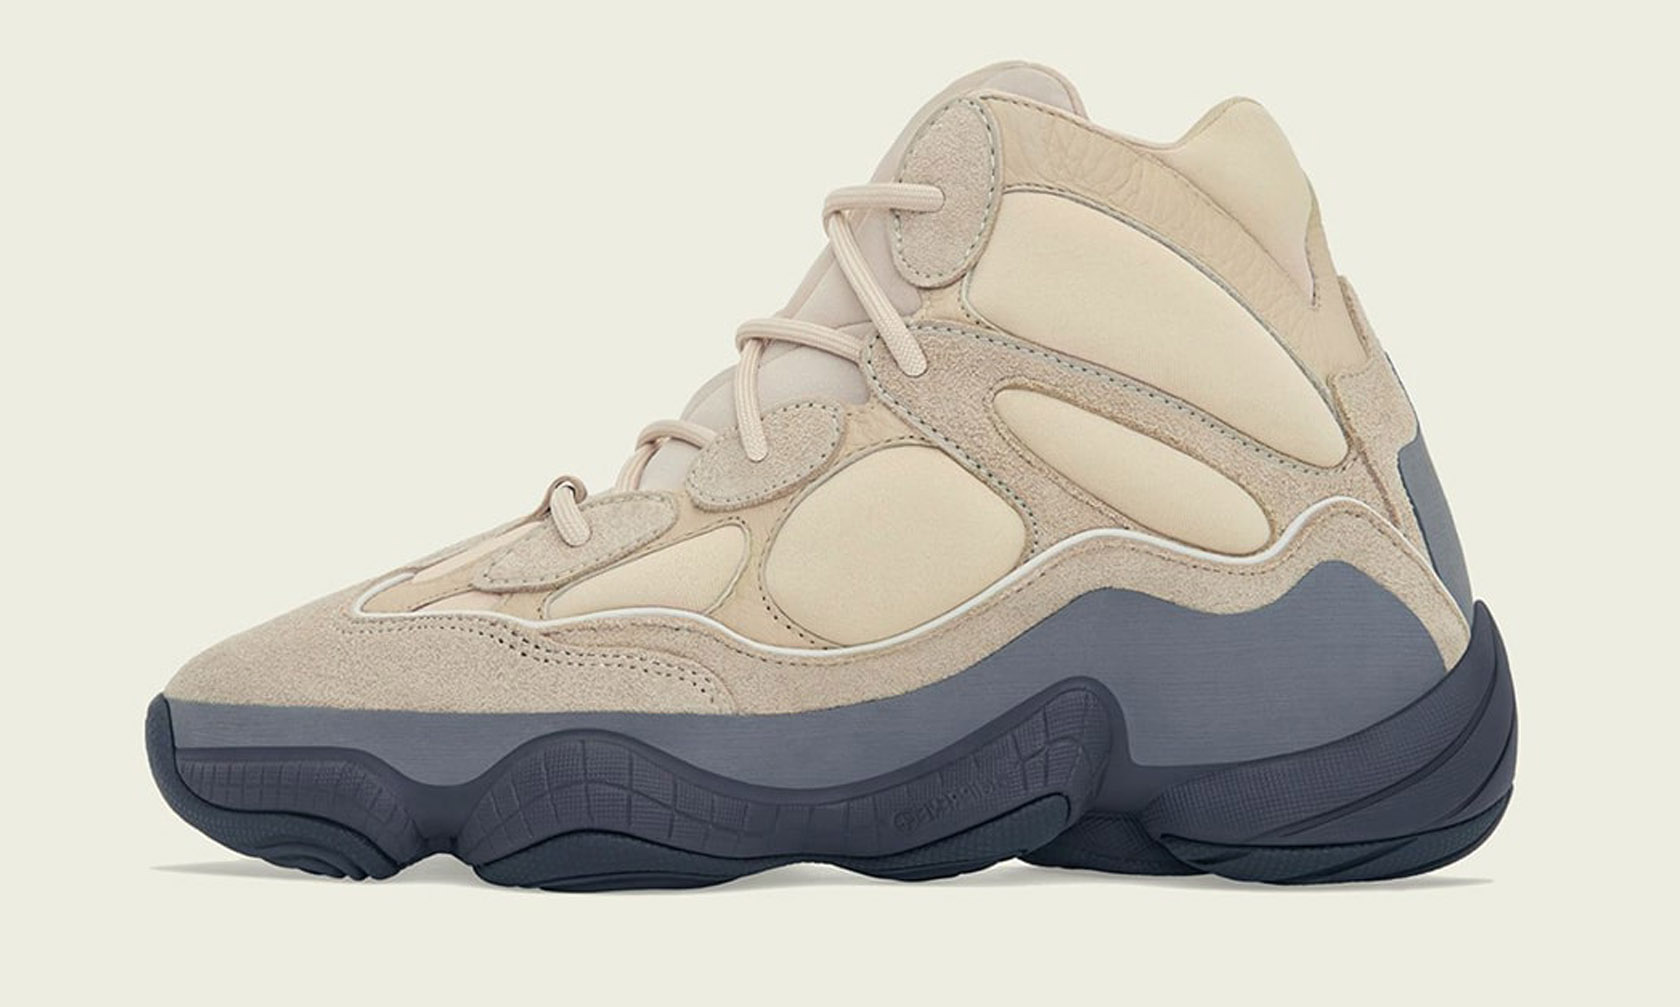 ADIDAS YEEZY 500 HIGH SHALE WARM